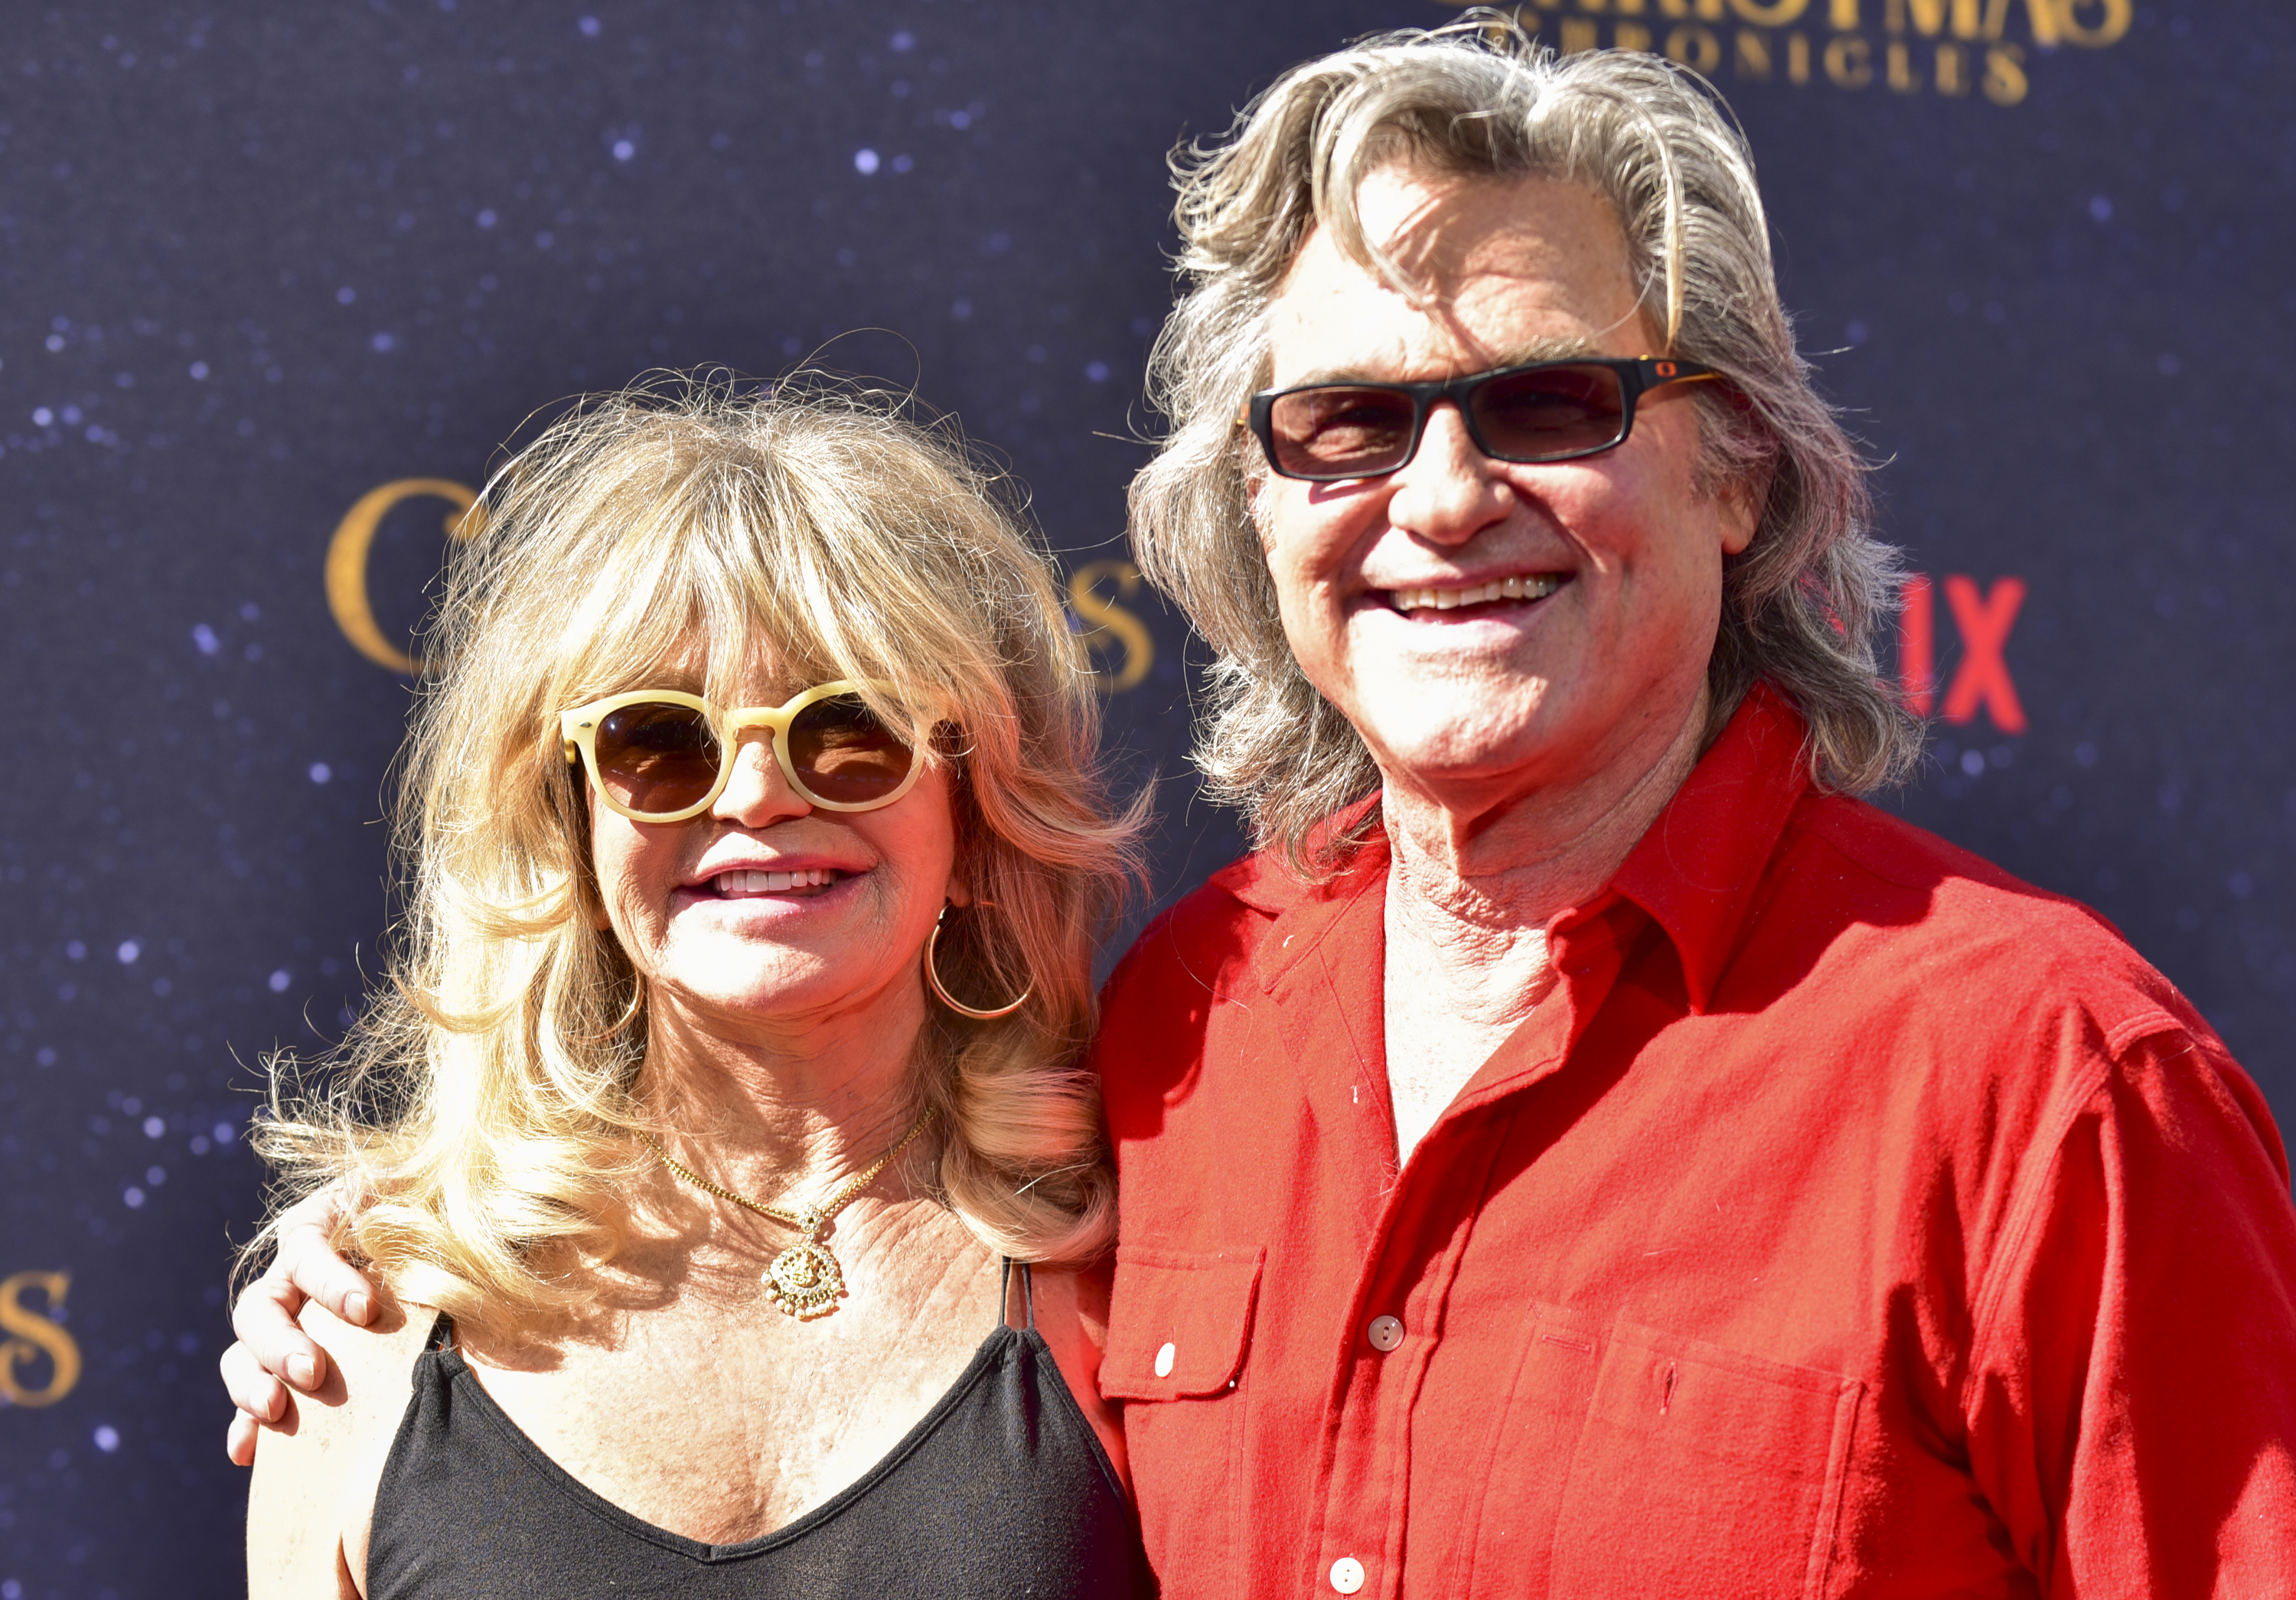 Goldie Hawn and Kurt Russell arrive at the Premiere of Netflix's 'The Christmas Chronicles' (Photo by Rodin Eckenroth/Getty Images)